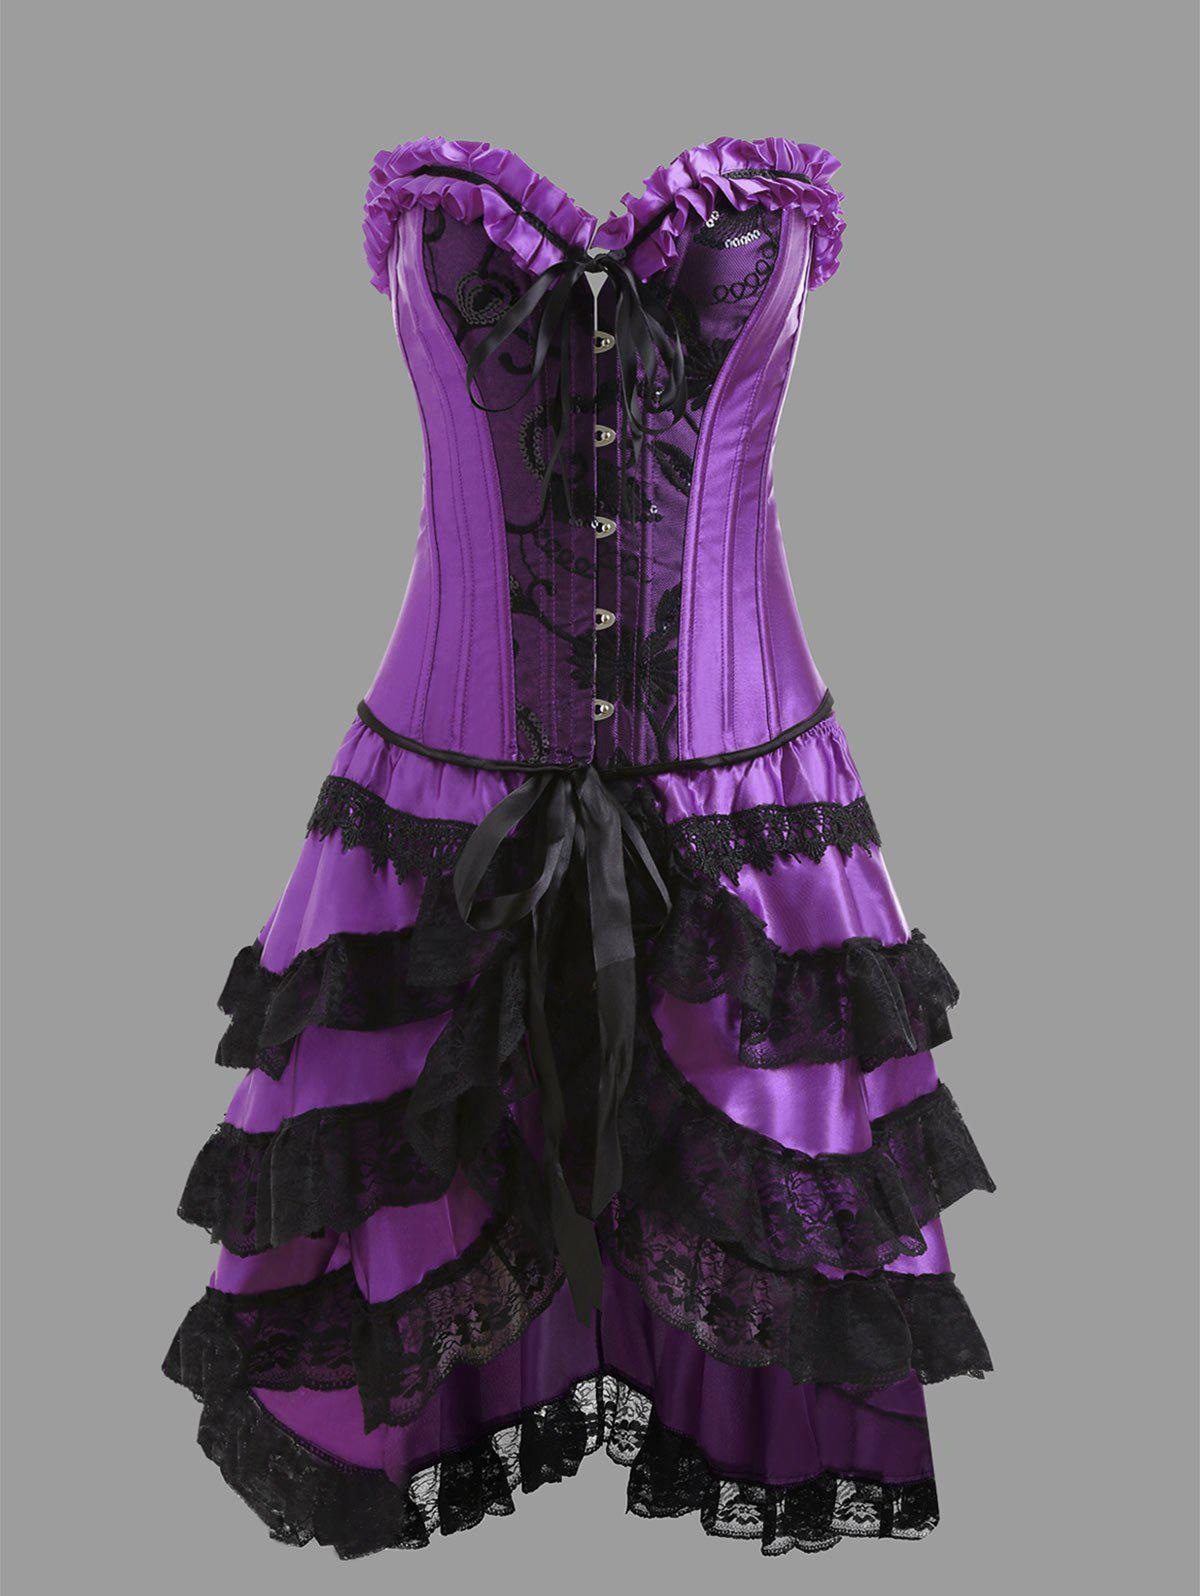 Underbust Corset with Flounce Lace SkirtWOMEN<br><br>Size: 2XL; Color: PURPLE; Material: Polyester,Spandex; Pattern Type: Others; Embellishment: Criss-Cross,Lace,Ruffles; Weight: 0.4100kg; Package Contents: 1 x Corset  1 x Skirt  1 x T Back;